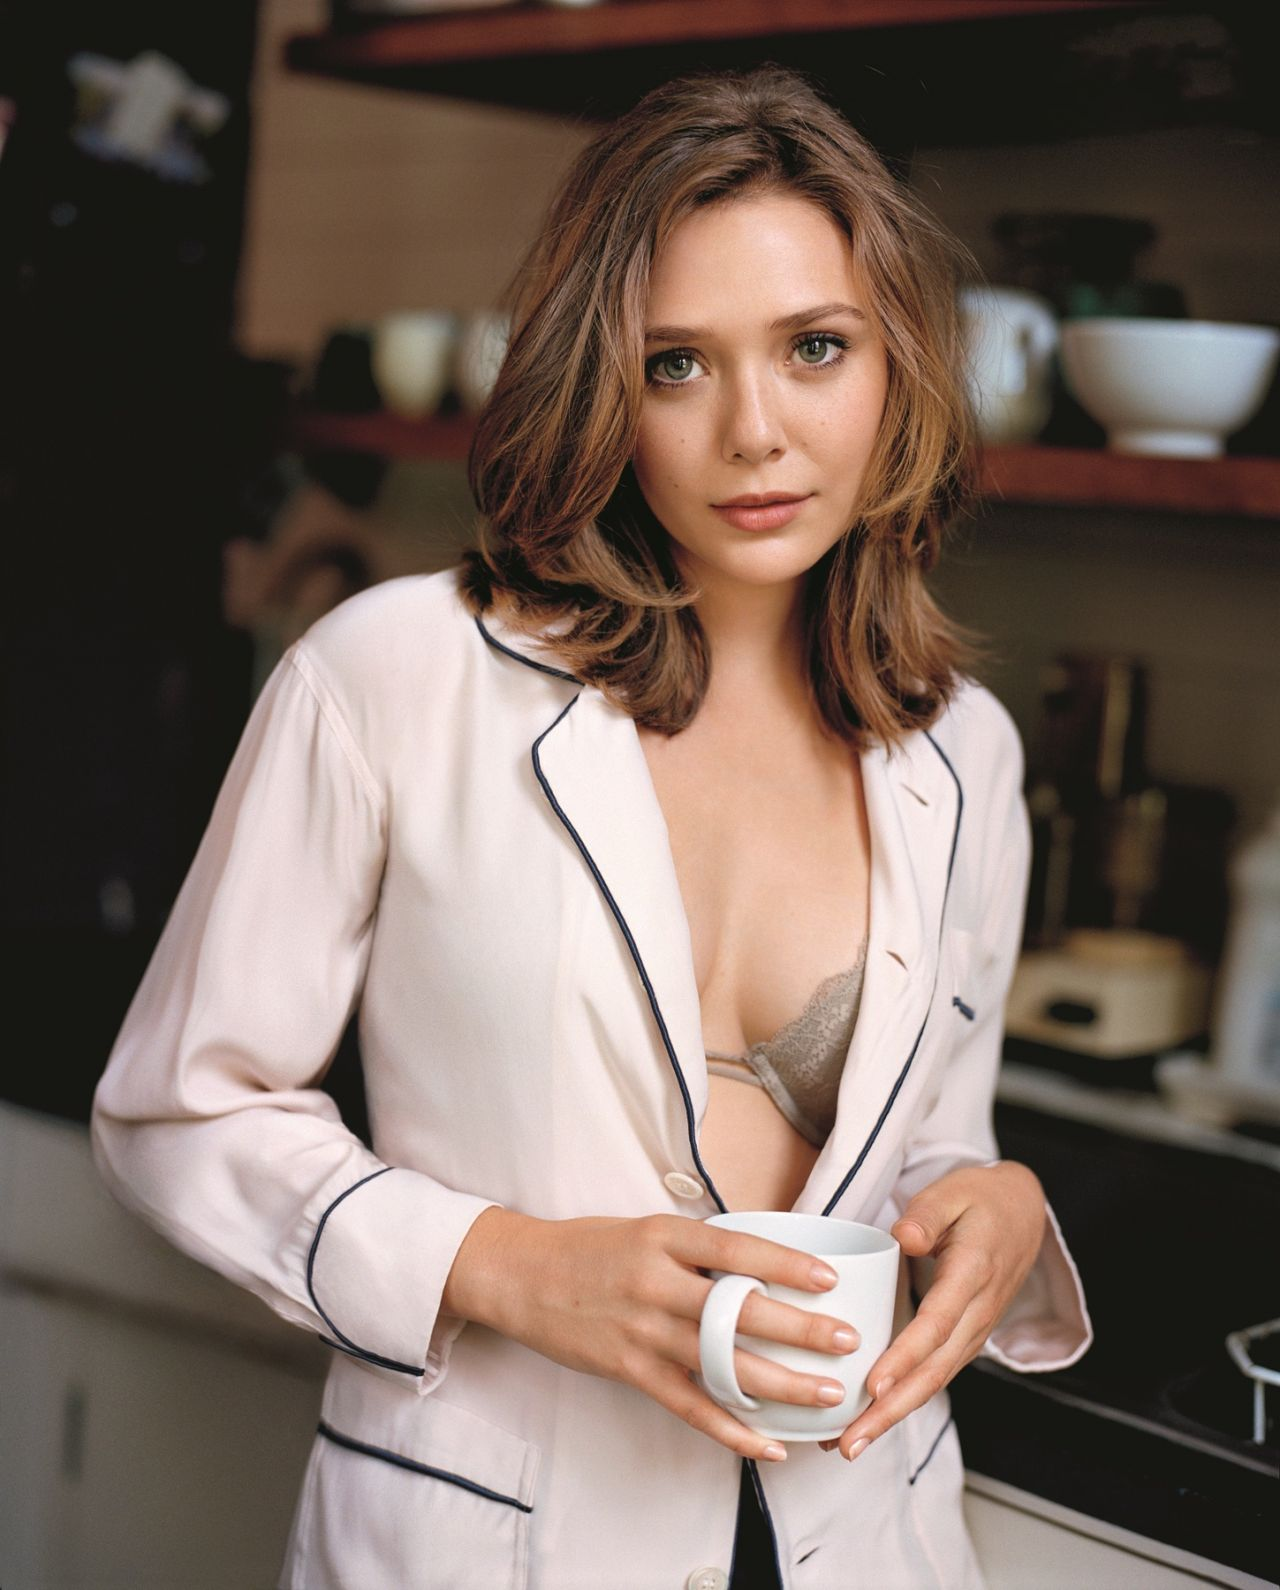 Elizabeth Olsen – Matt Jones Photoshoot for GQ Magazine (2014)